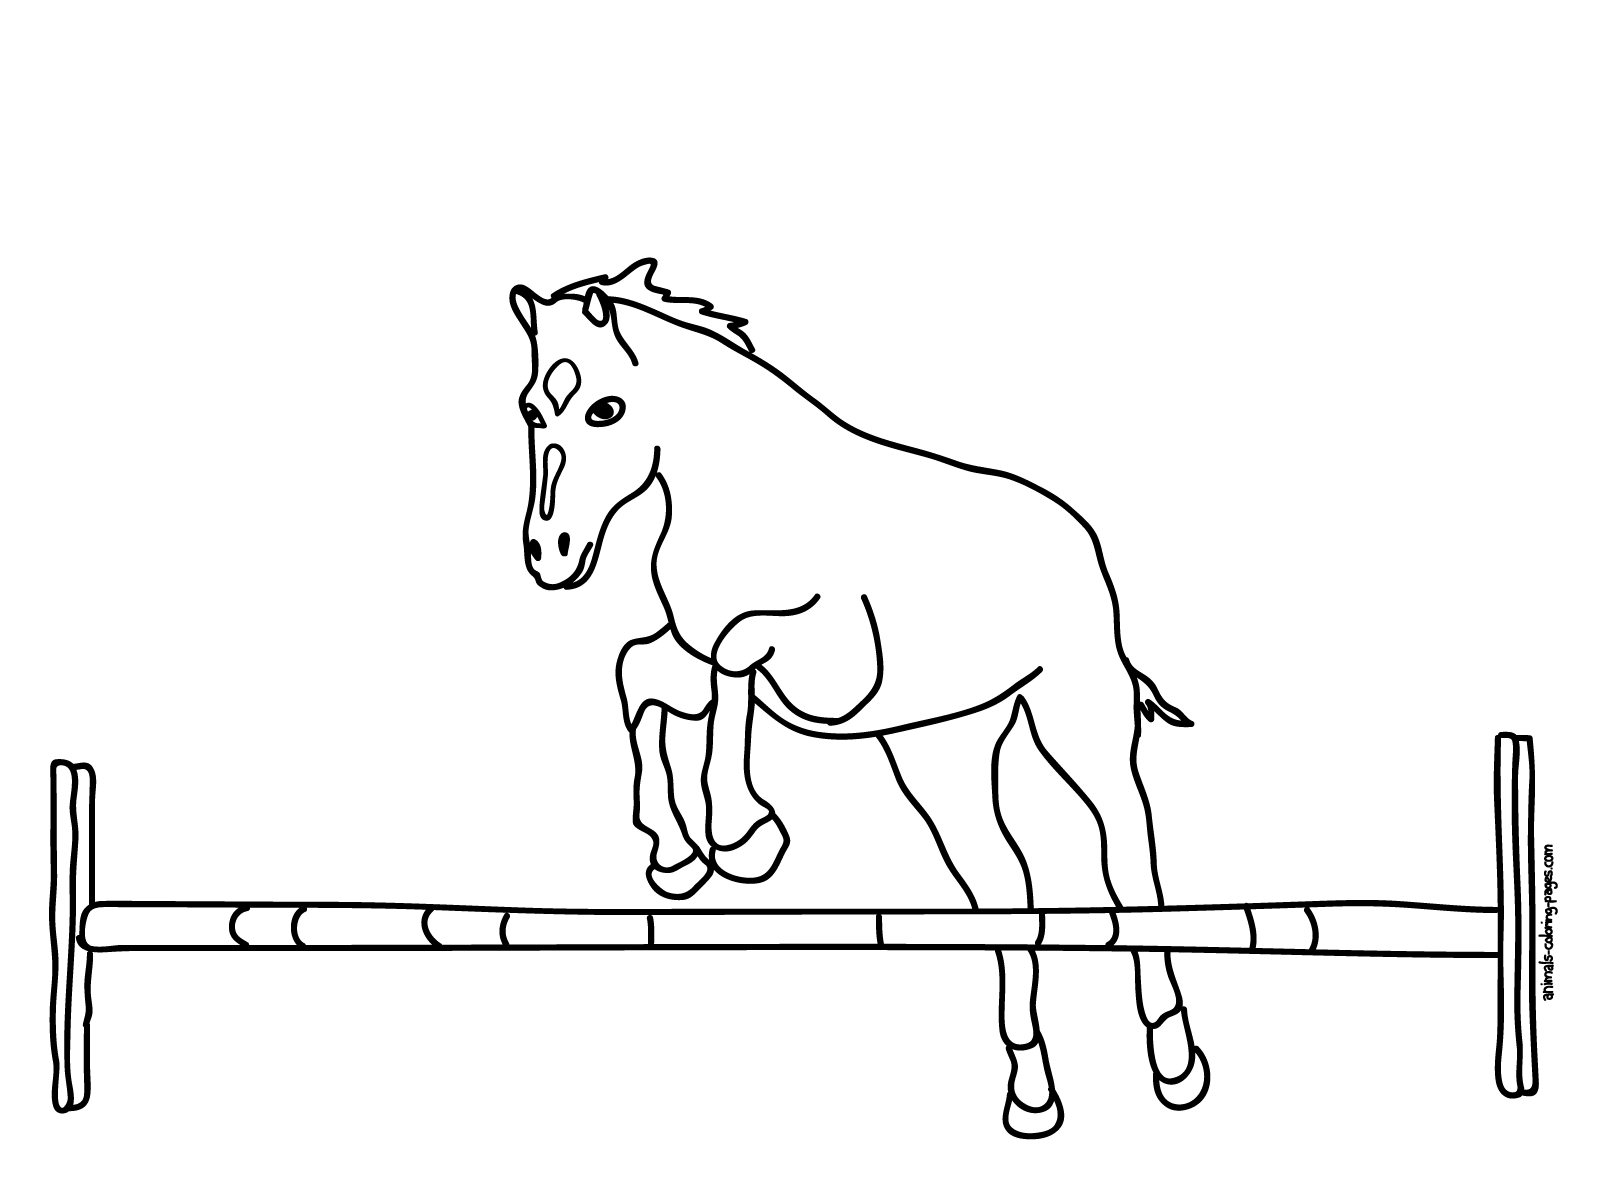 horses jumping coloring pages - photo#29